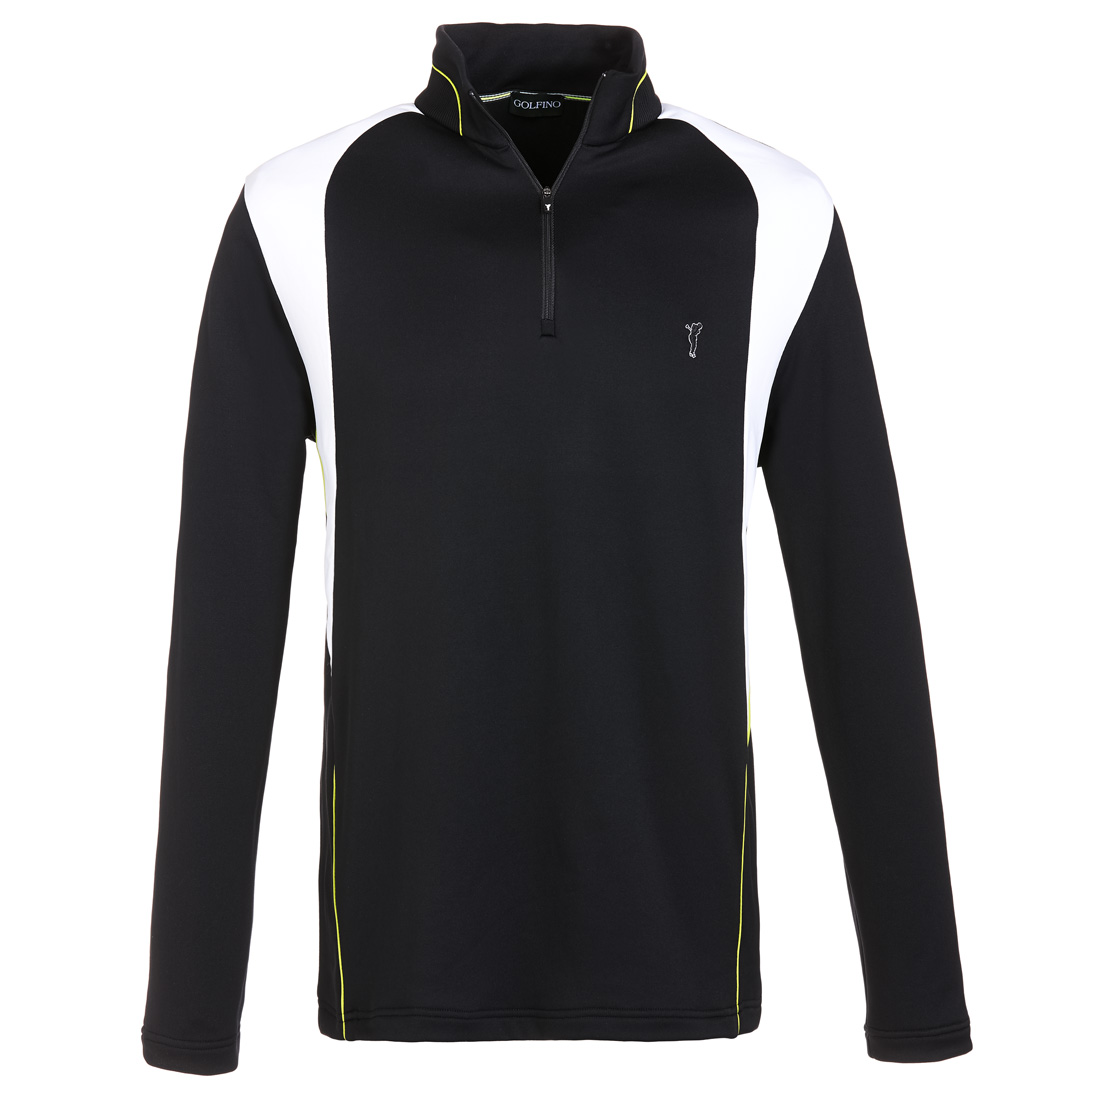 Softer Herren Stretch Golfunterzieher als Baselayer der Golfgarderobe